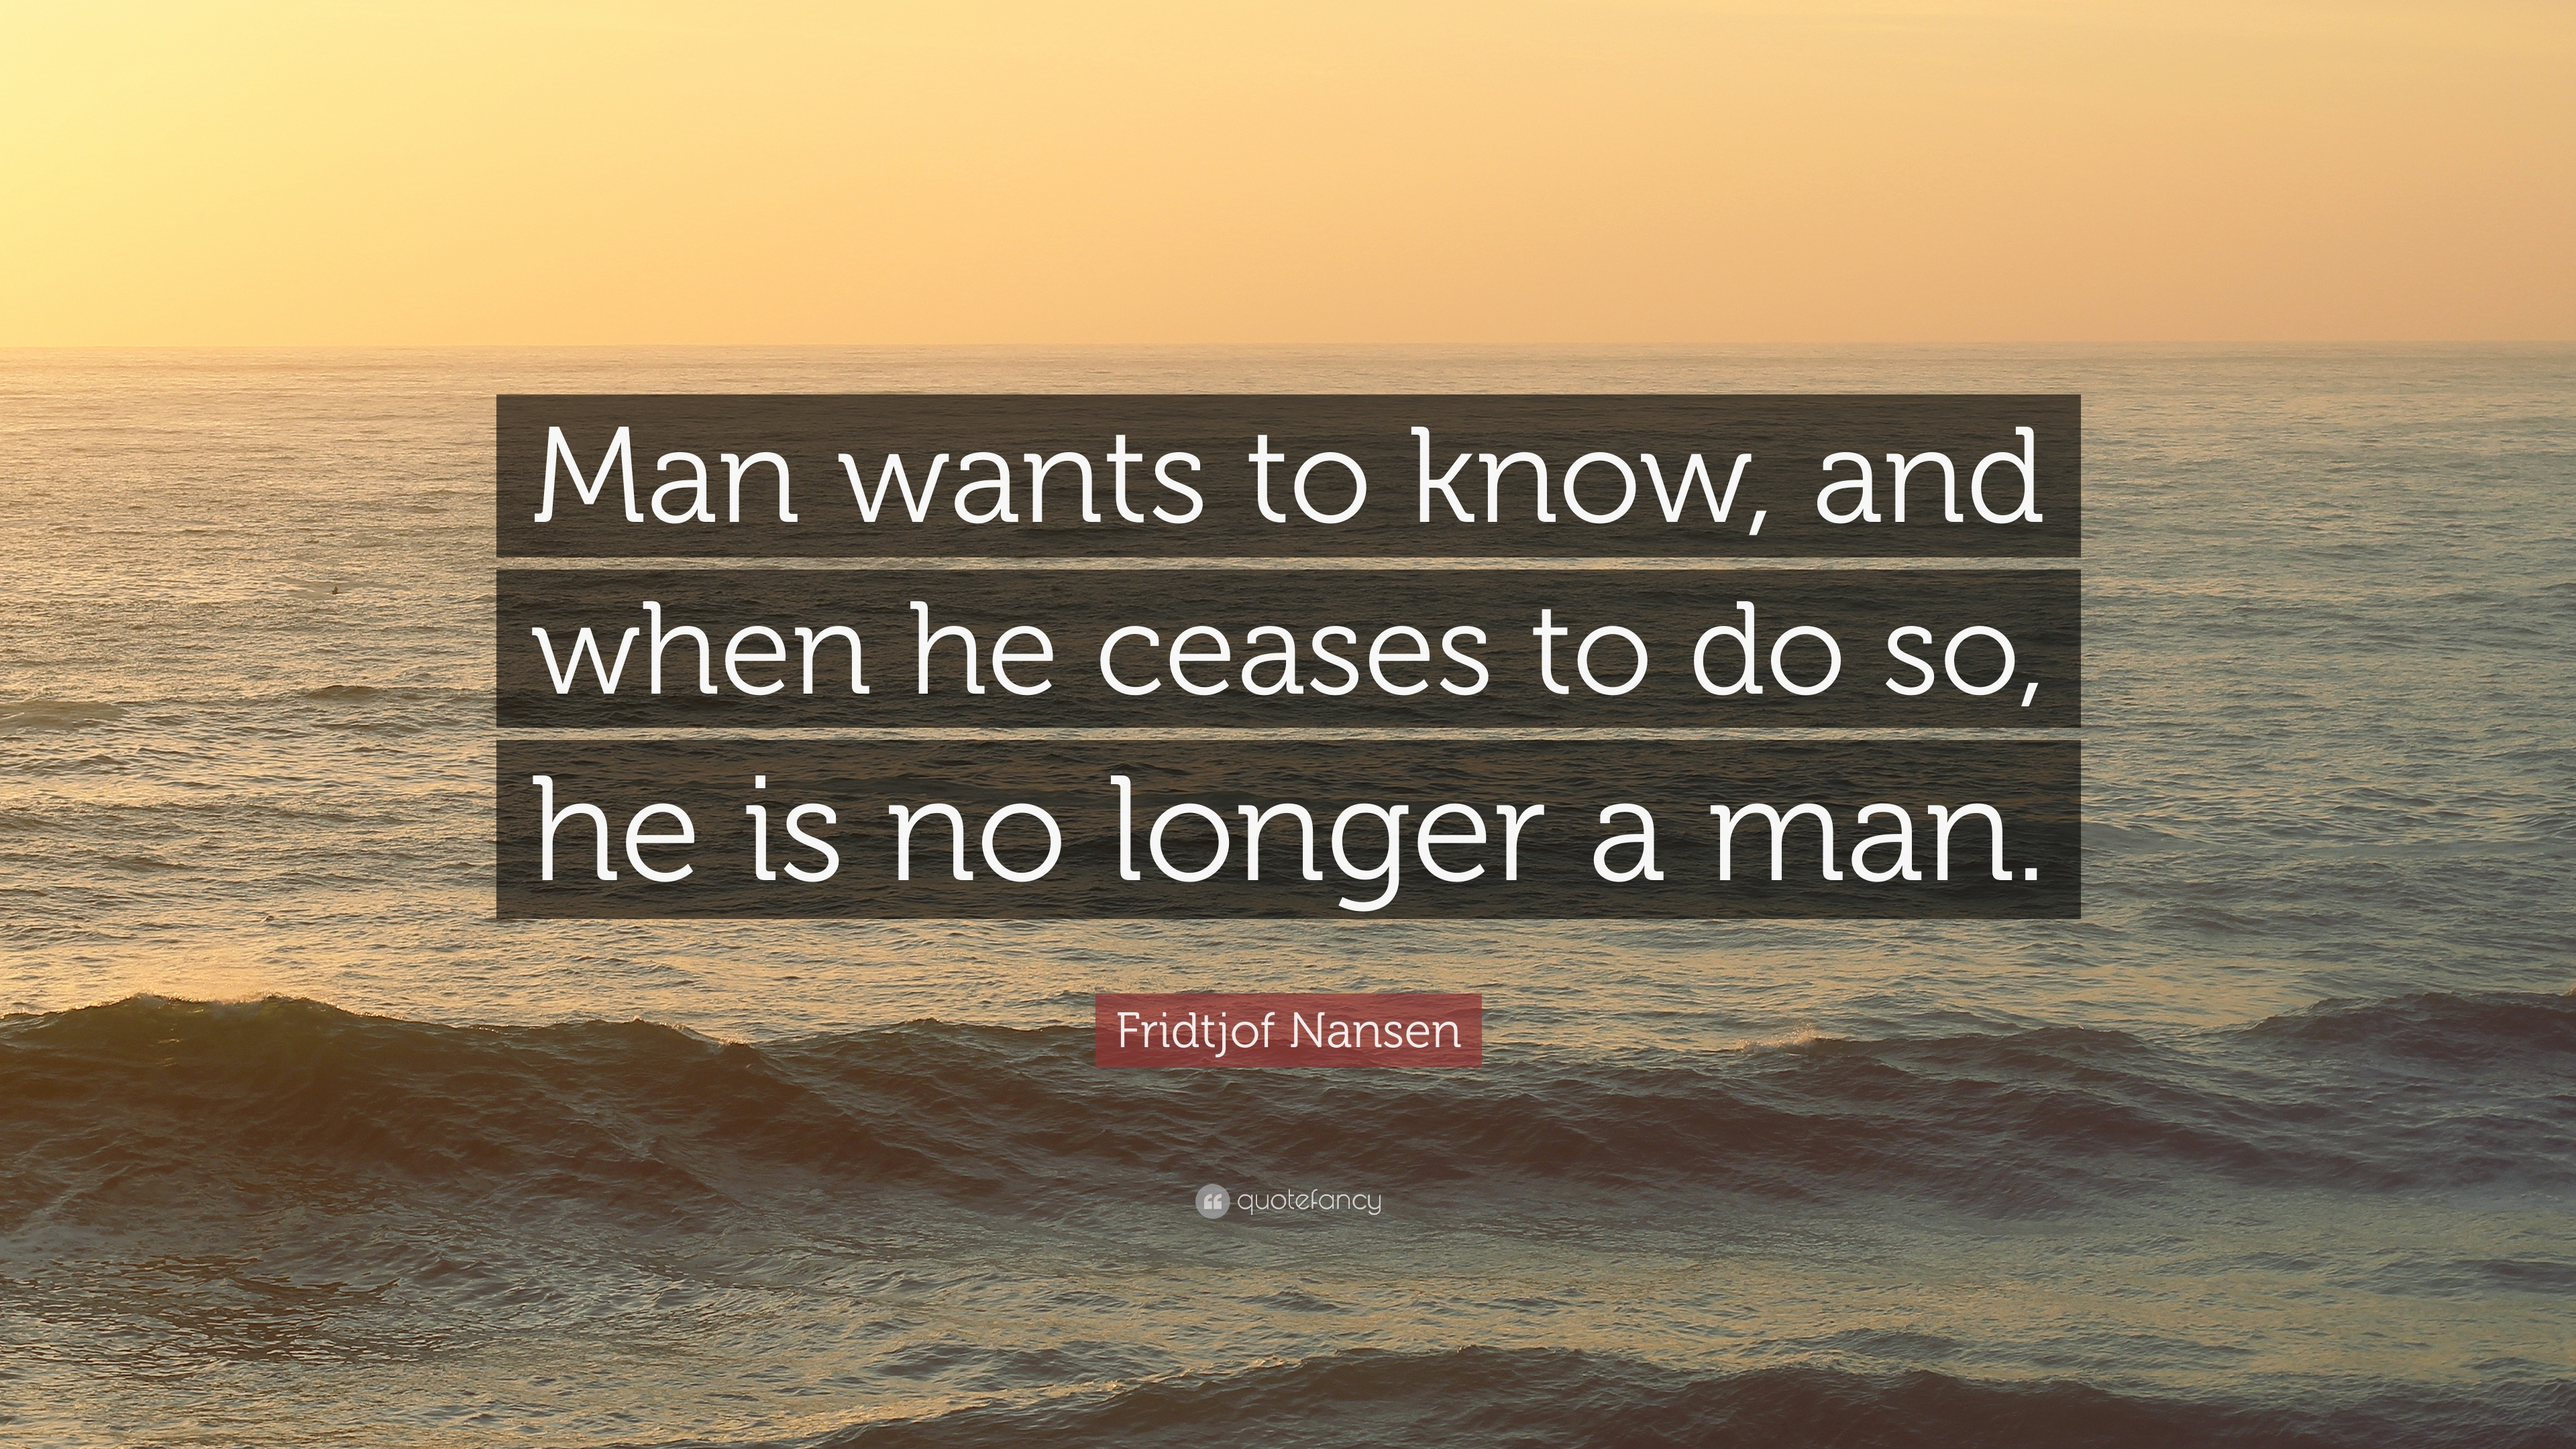 "Fridtjof Nansen Quotes Fridtjof Nansen Quote: ""Man wants to know, and when he ceases to  Fridtjof Nansen Quotes"